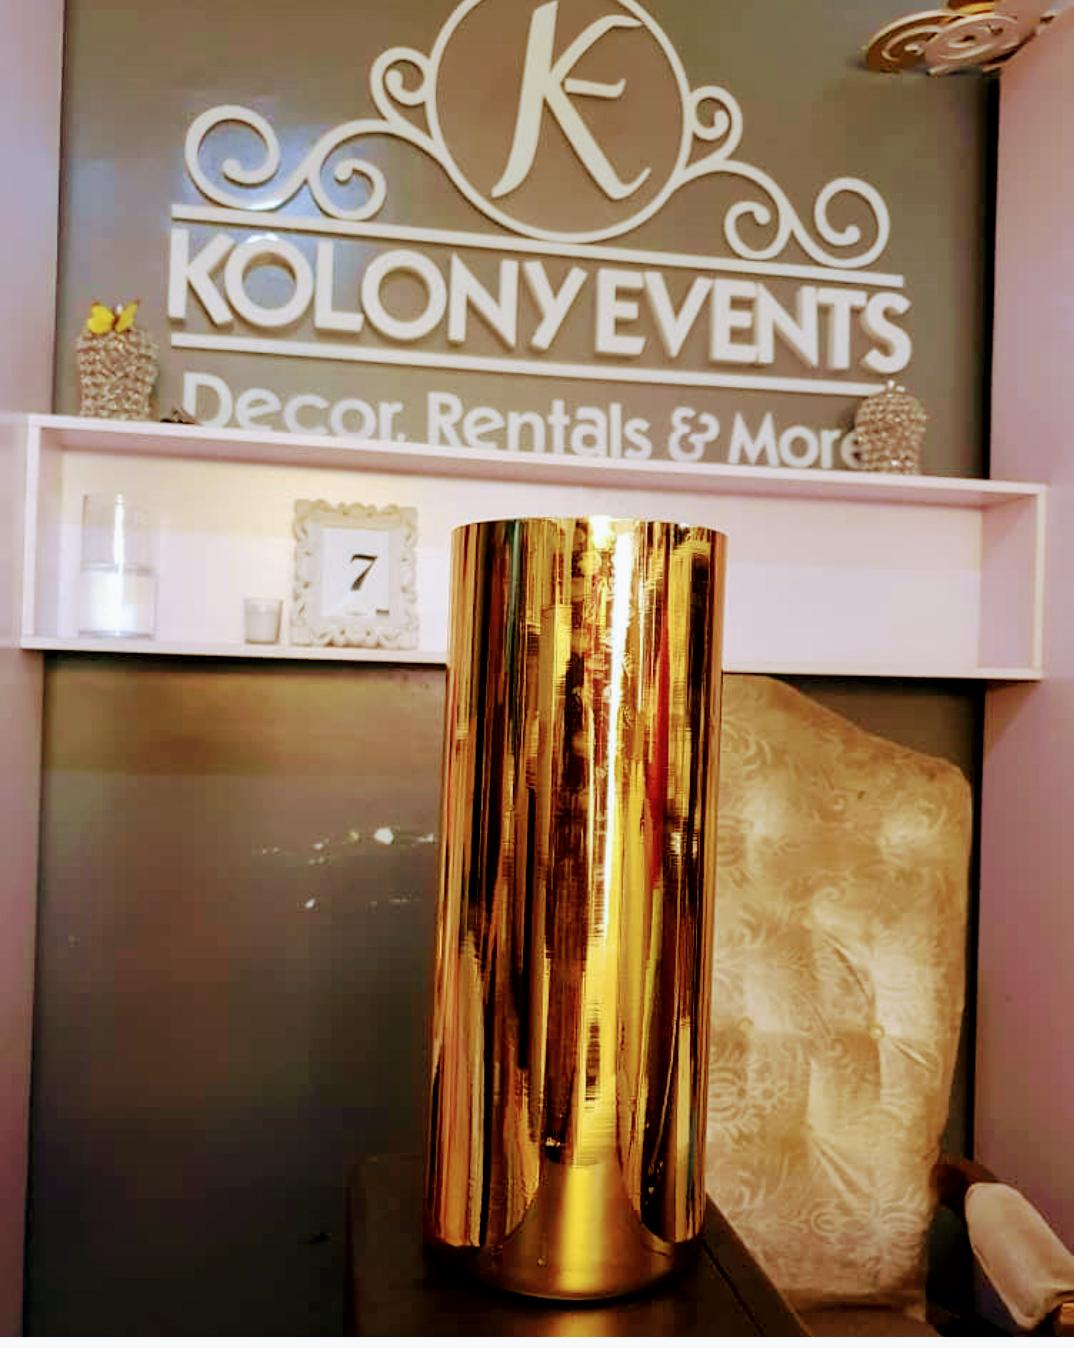 Kolony Events